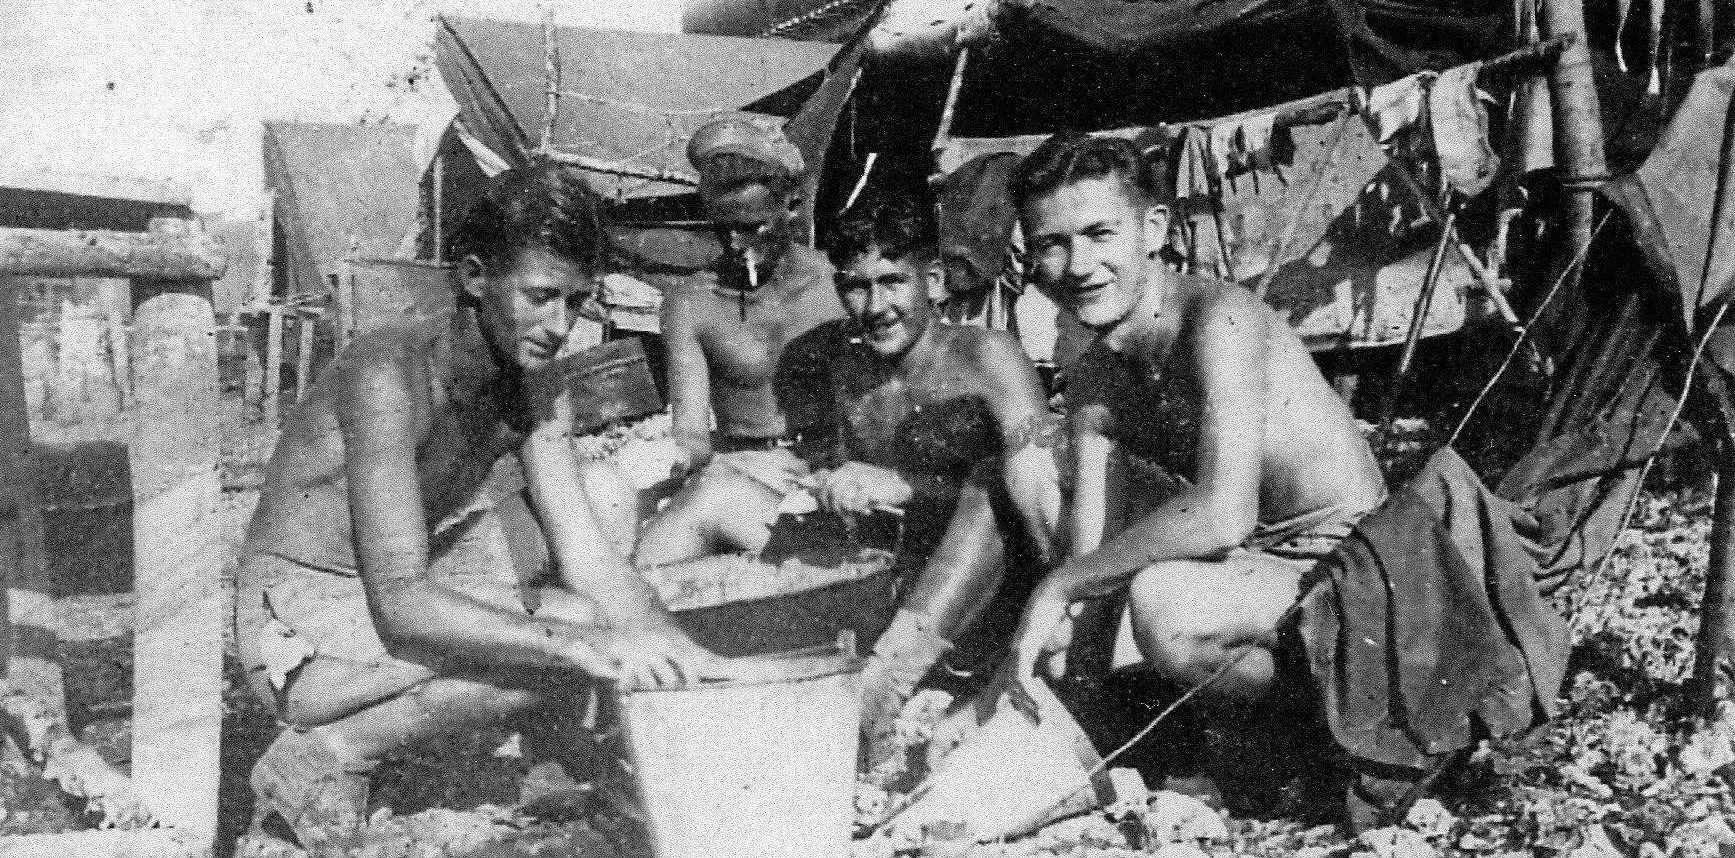 END OF THE WAR: Ted Bleakly (right) at a camp in the Pacific.